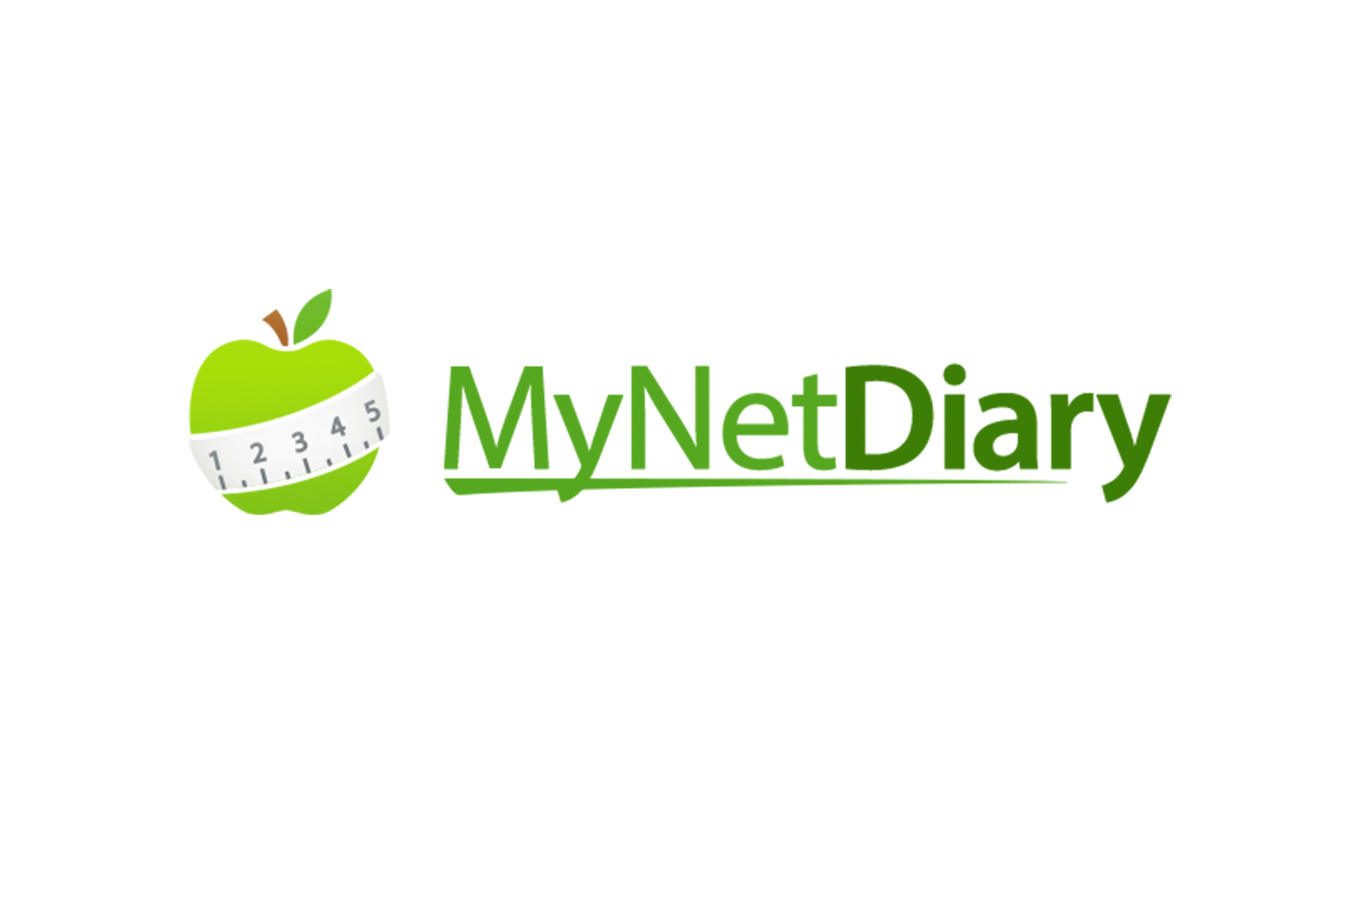 Wonder Why MyNetDiary is So Easy? Its About Memorizing, Not Shortcutting